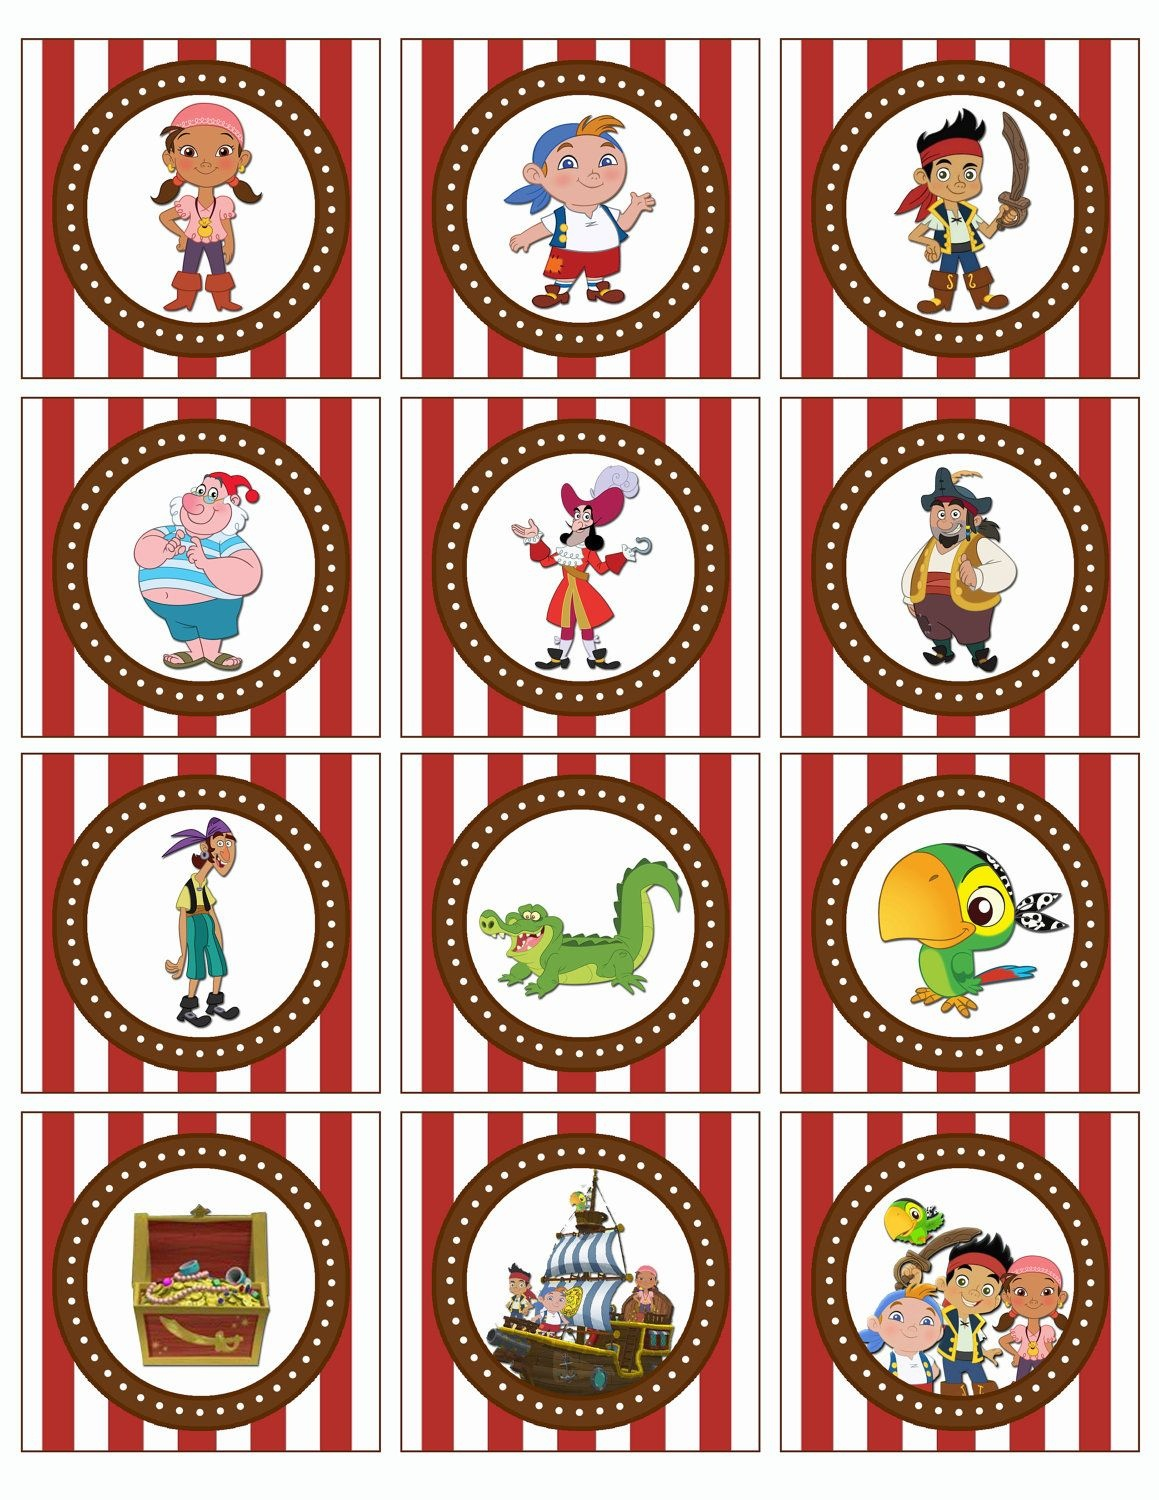 Jake And The Neverland Pirates Free Printables   Jake And The - Free Printable Jake And The Neverland Pirates Cupcake Toppers